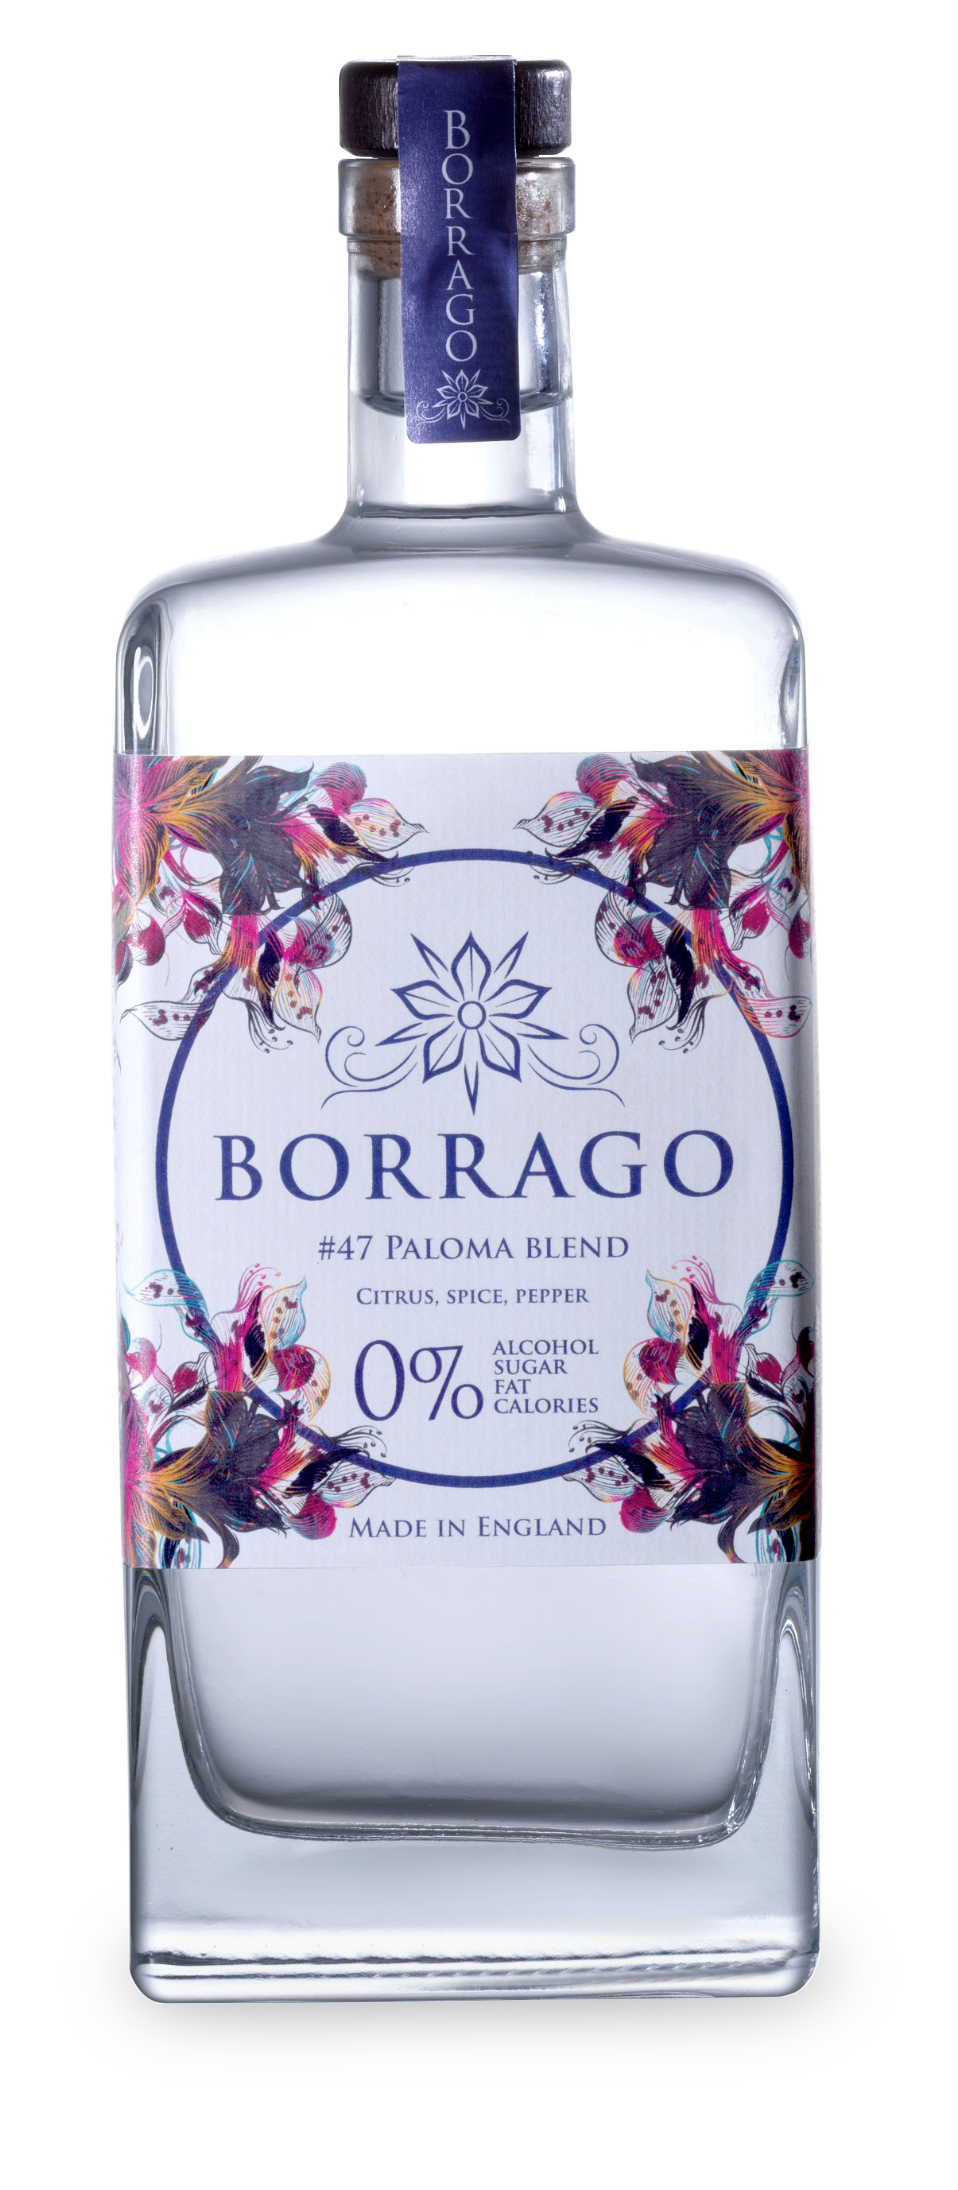 Borrago Gift Set